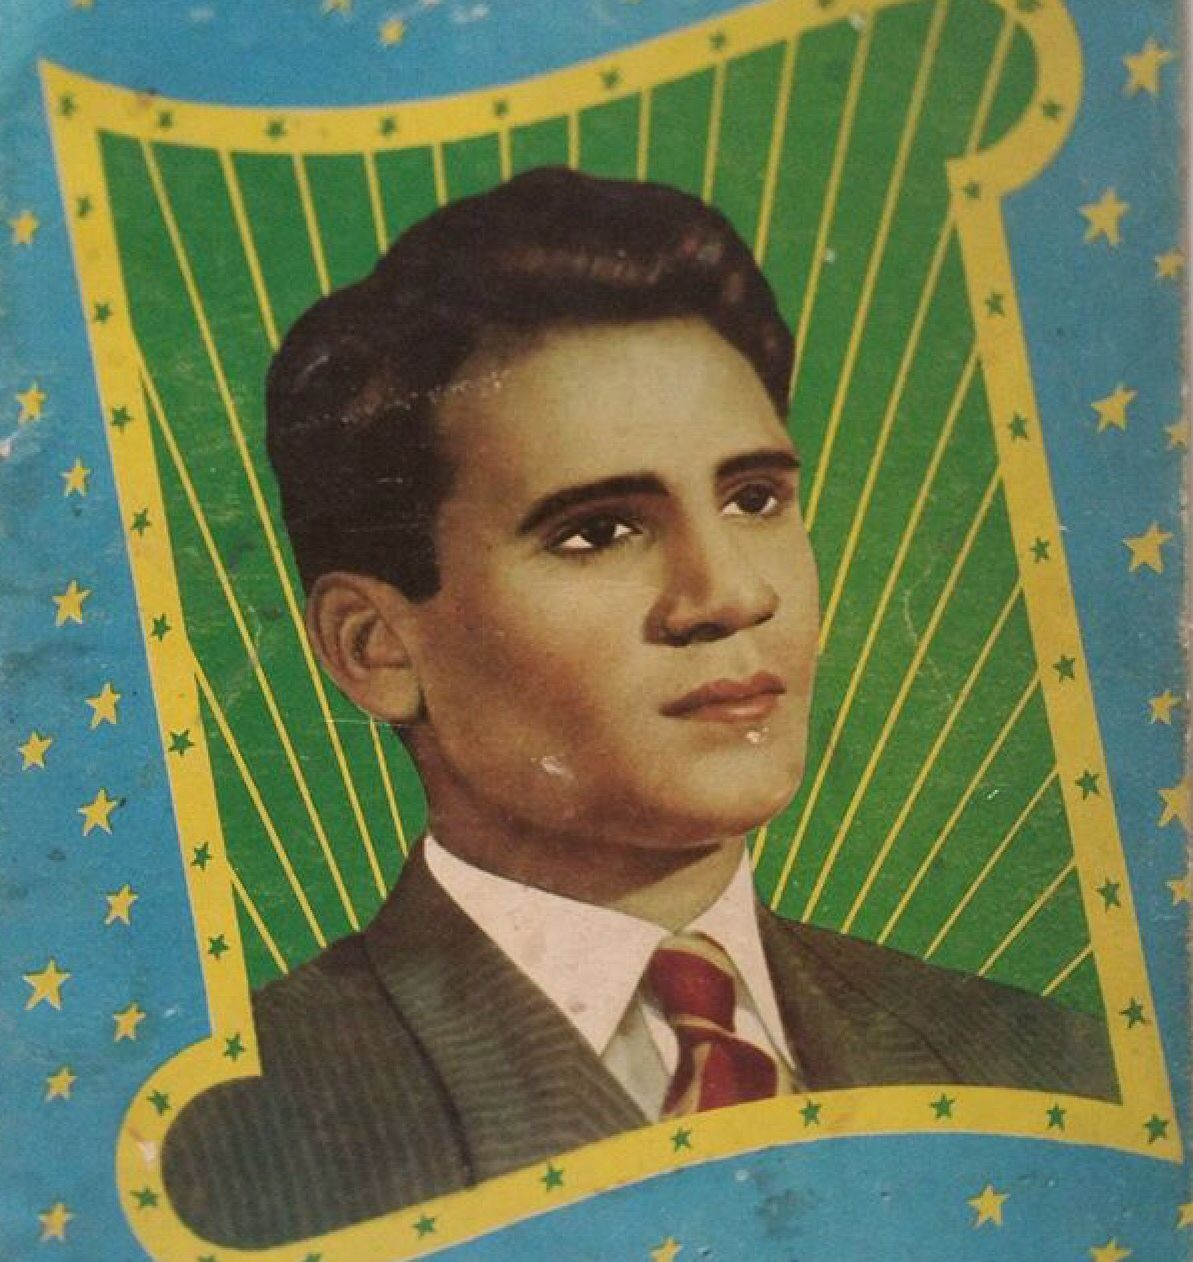 Abdel Halim Ali Shabana Arabic Commonly Known As Hafez June 21 1929 March 30 1977